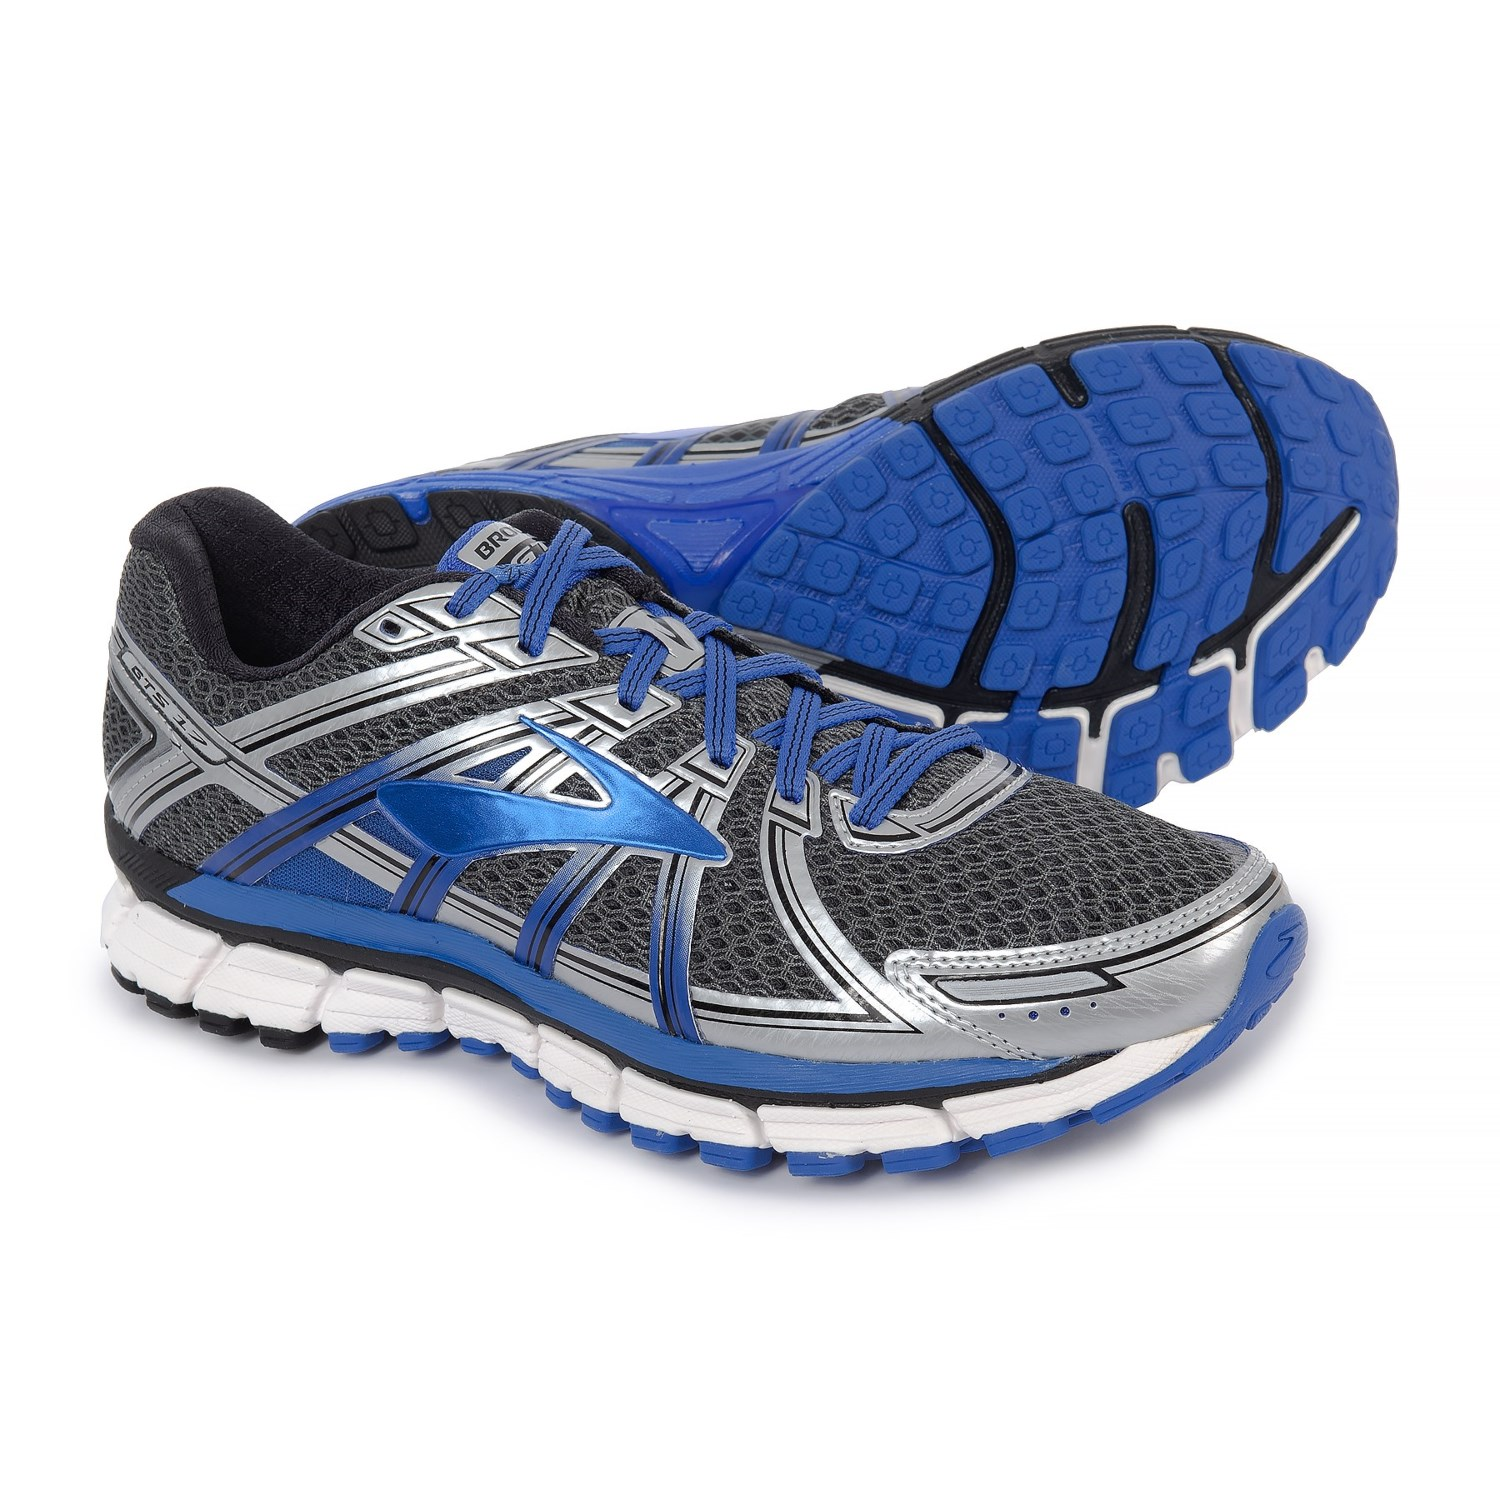 6a6aafce4f2 Brooks Adrenaline GTS 17 Running Shoes (For Men) in Anthracite Electric  Brooks Blue